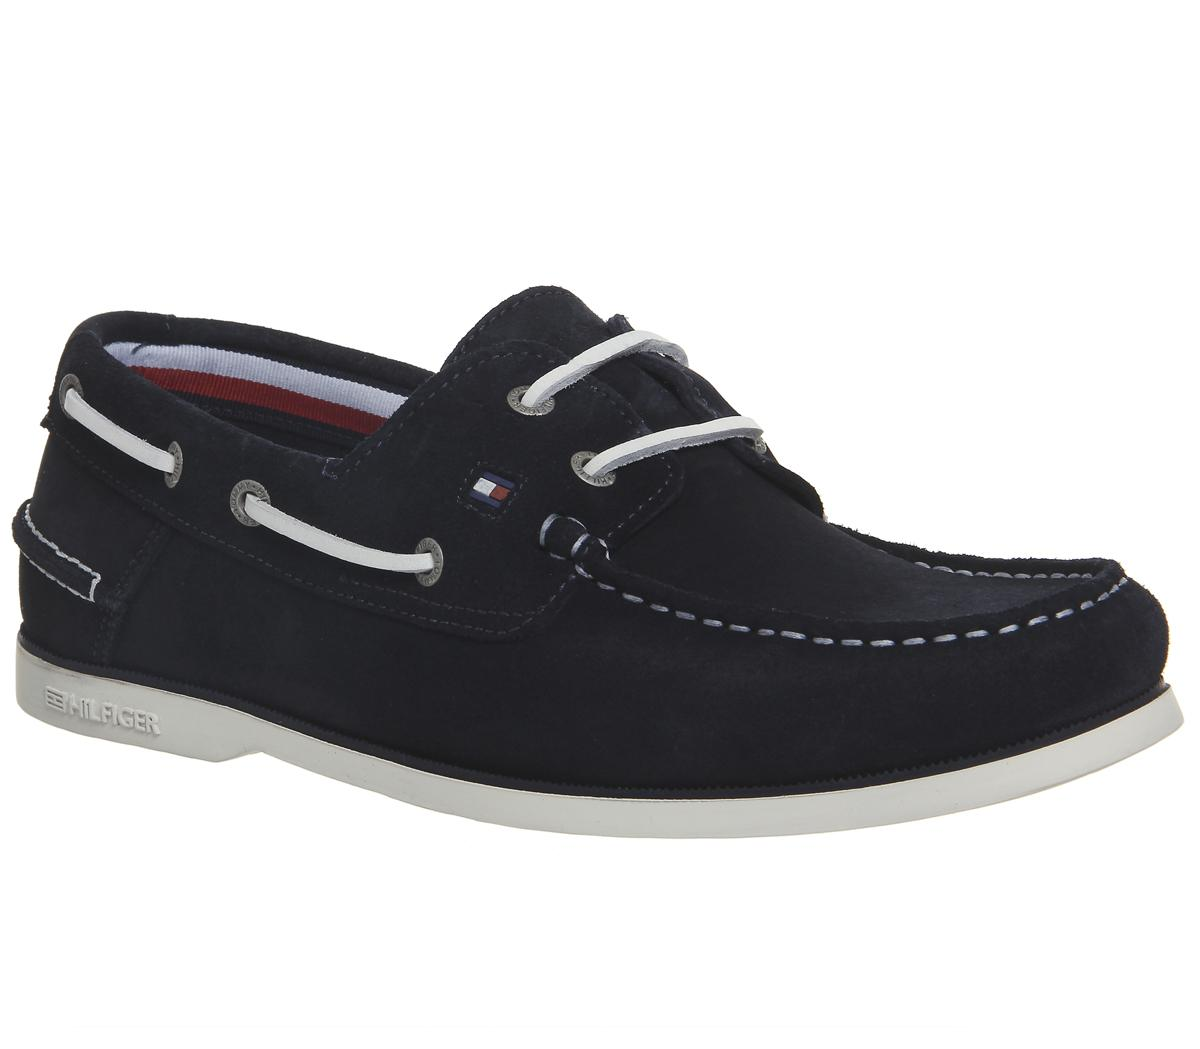 d0a1cc8b9bd7 Tommy Hilfiger Classic Boatshoes Midnight Suede - Boat Shoes